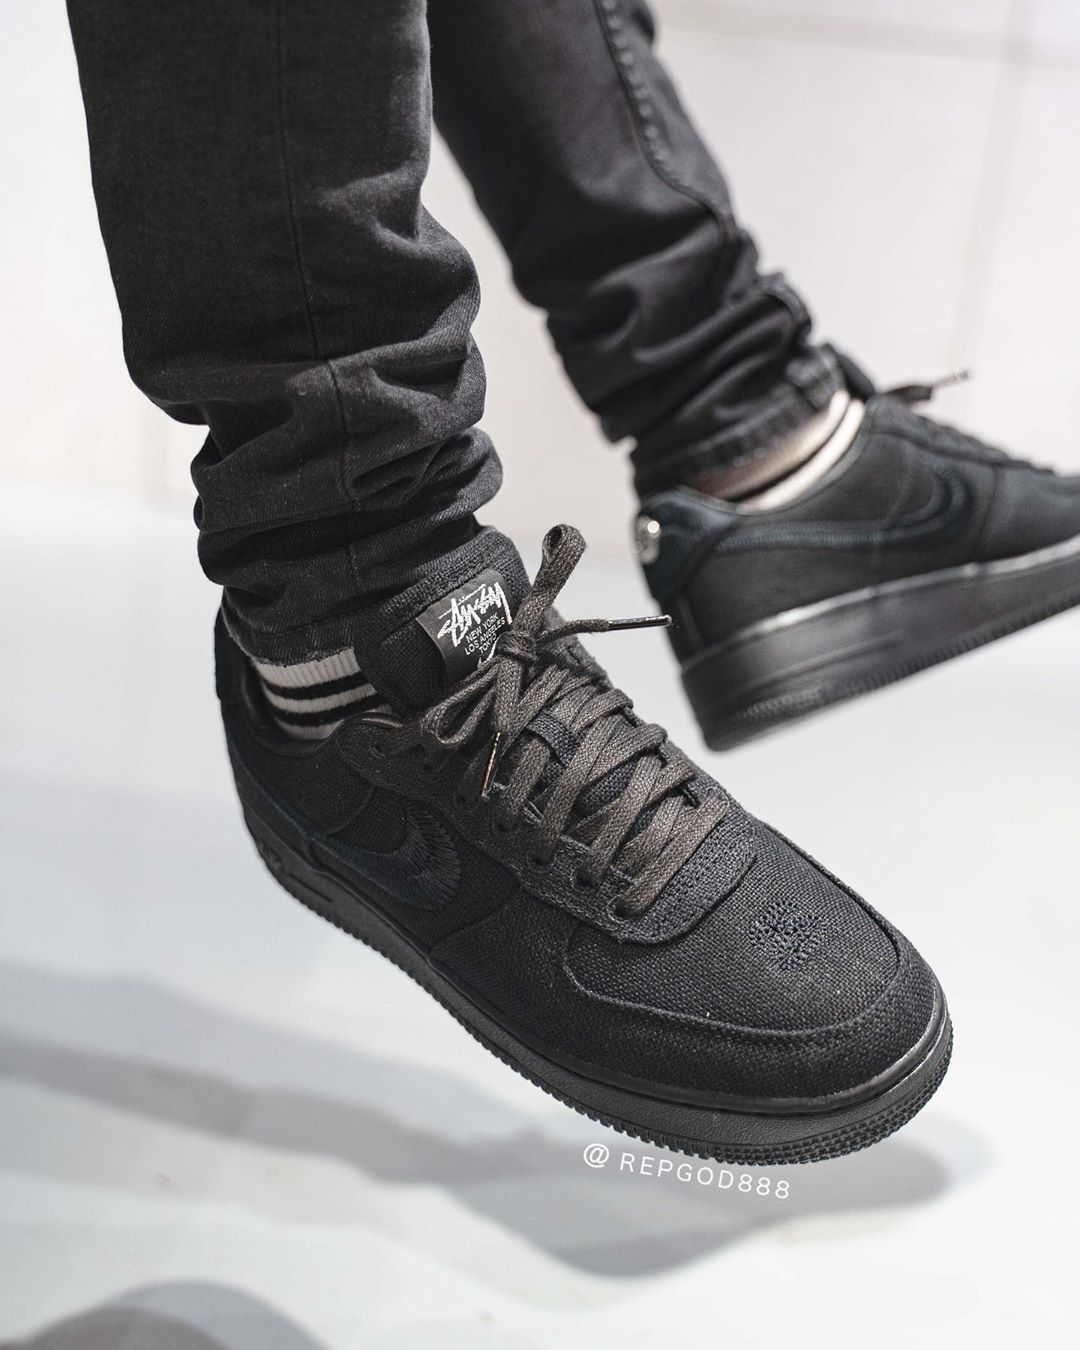 stussy-nike-air-force-1-low-fossil-stone-cz9084-001-release-2020-winter